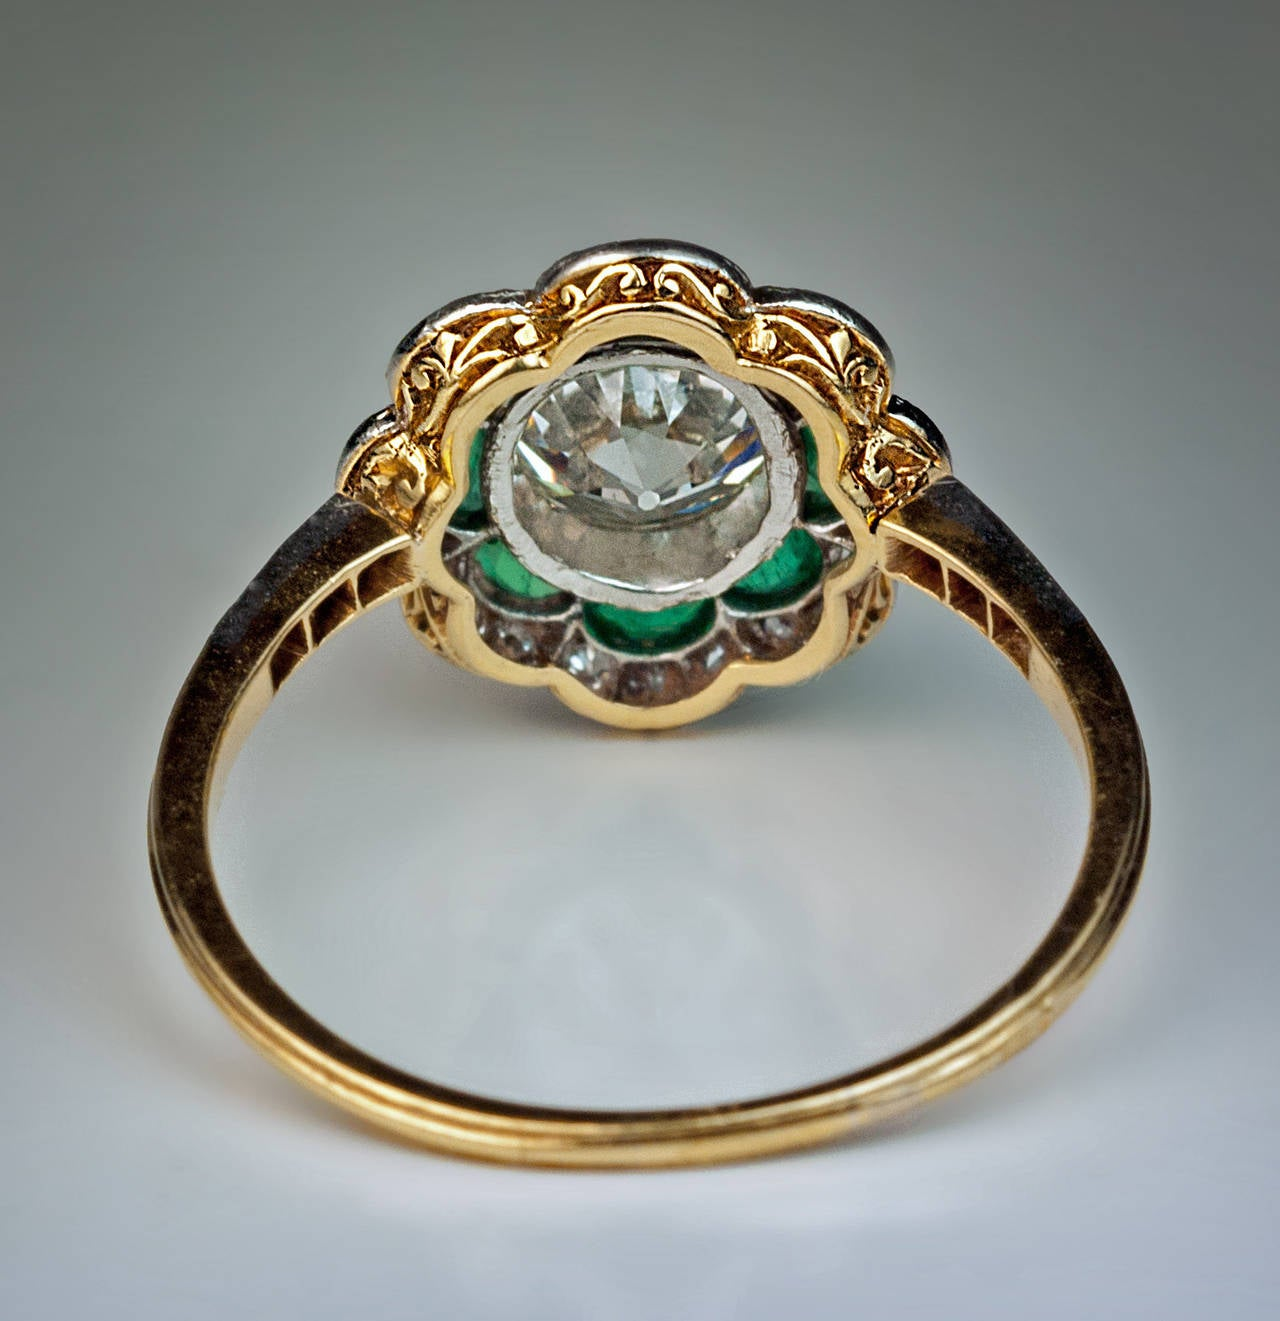 1920s Art Deco Emerald Diamond Platinum Engagement Ring 4